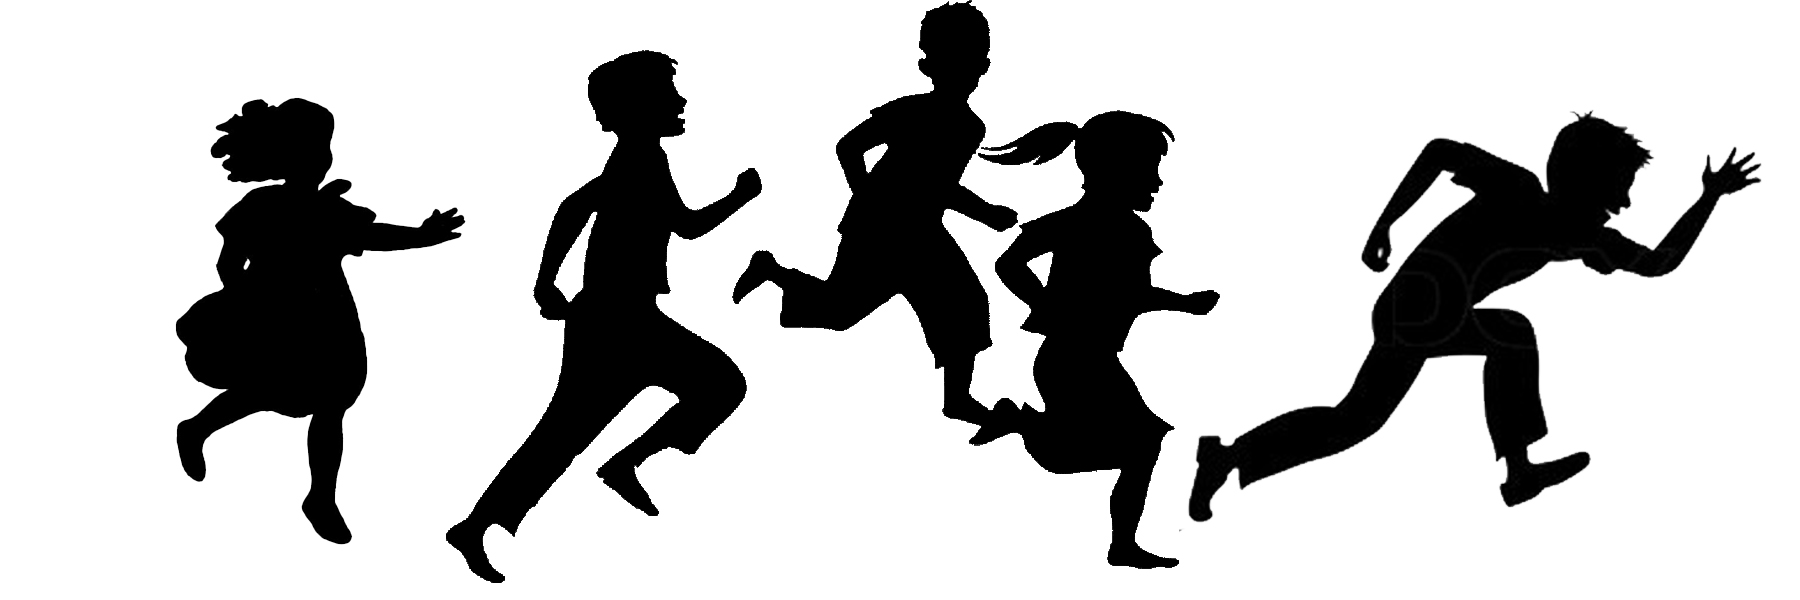 1800x600 Children Running Silhouette